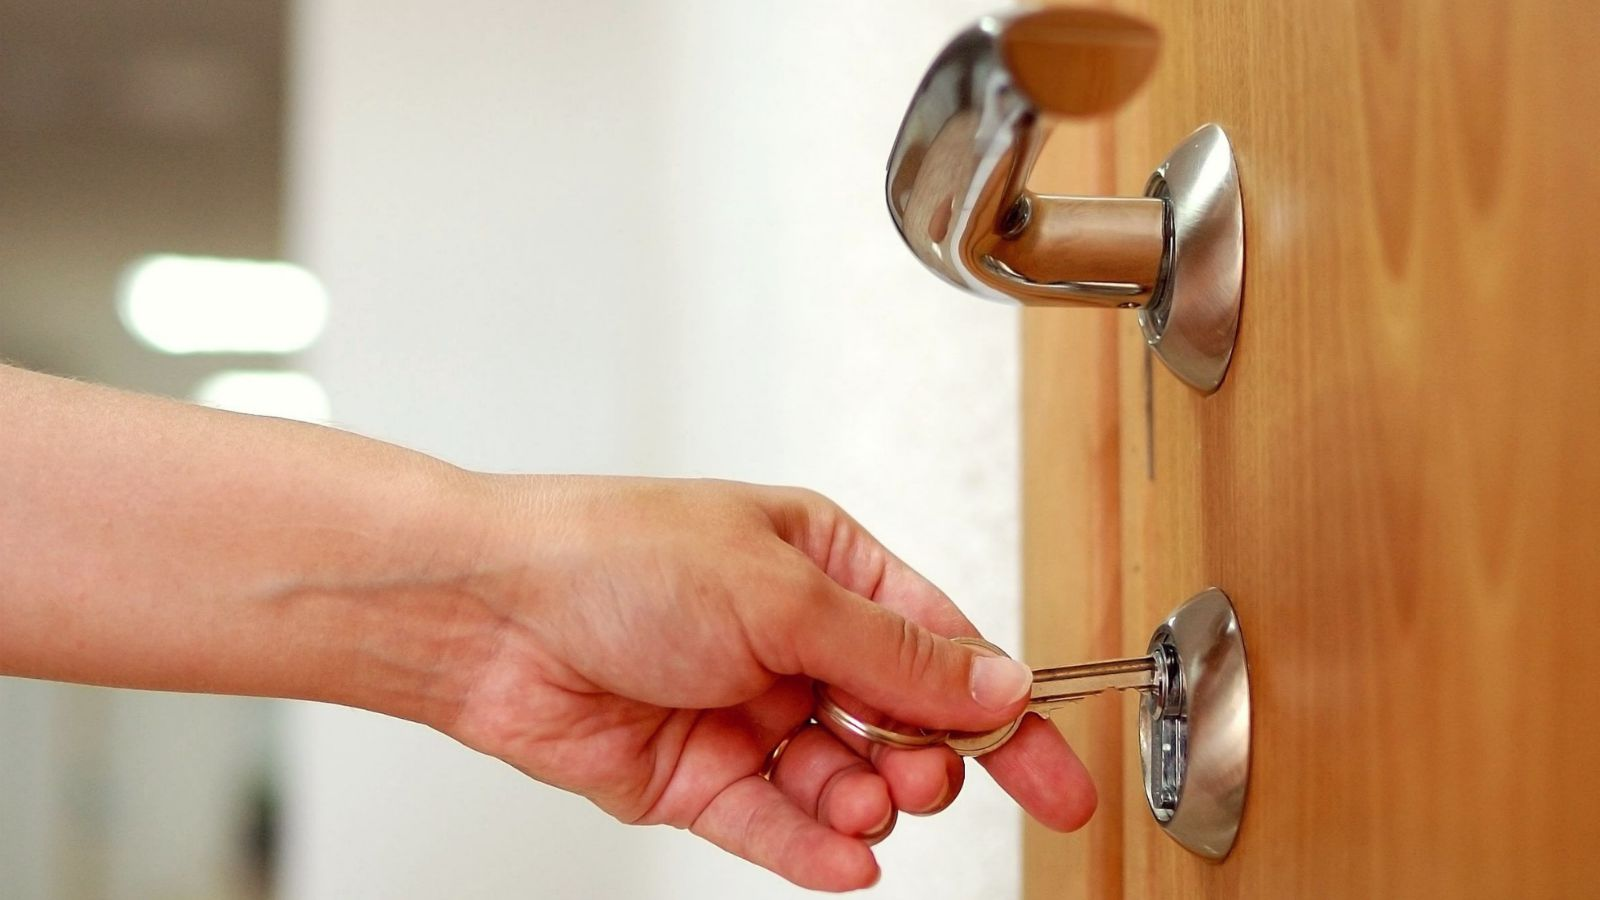 Your security can be in the best hands with a professional locksmith